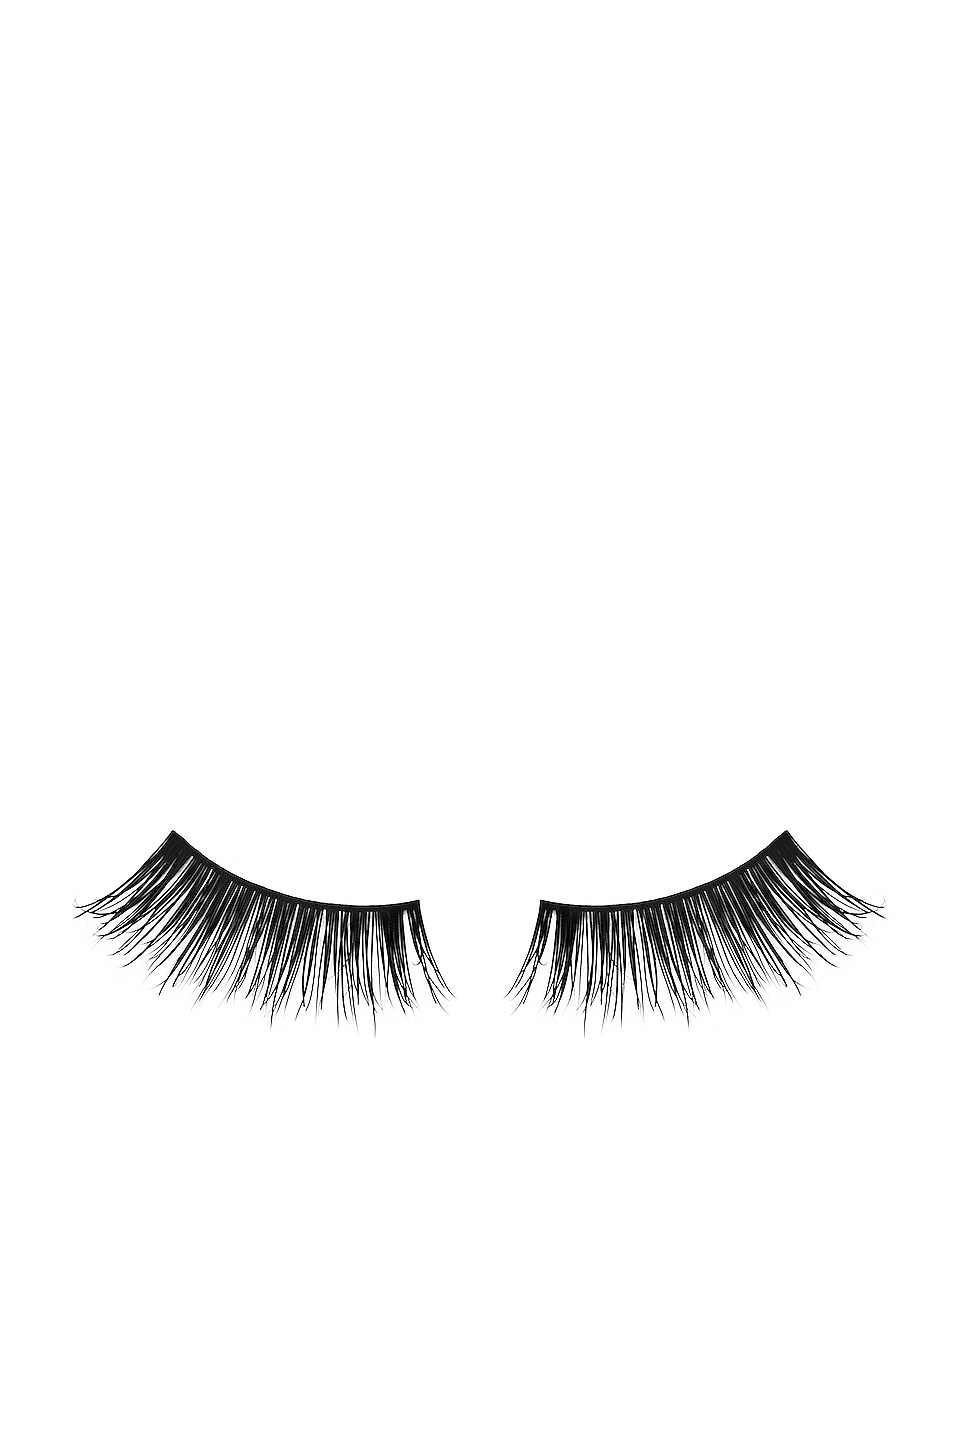 Velour Lashes The Extra 'Oomph' Mink Lashes in Black